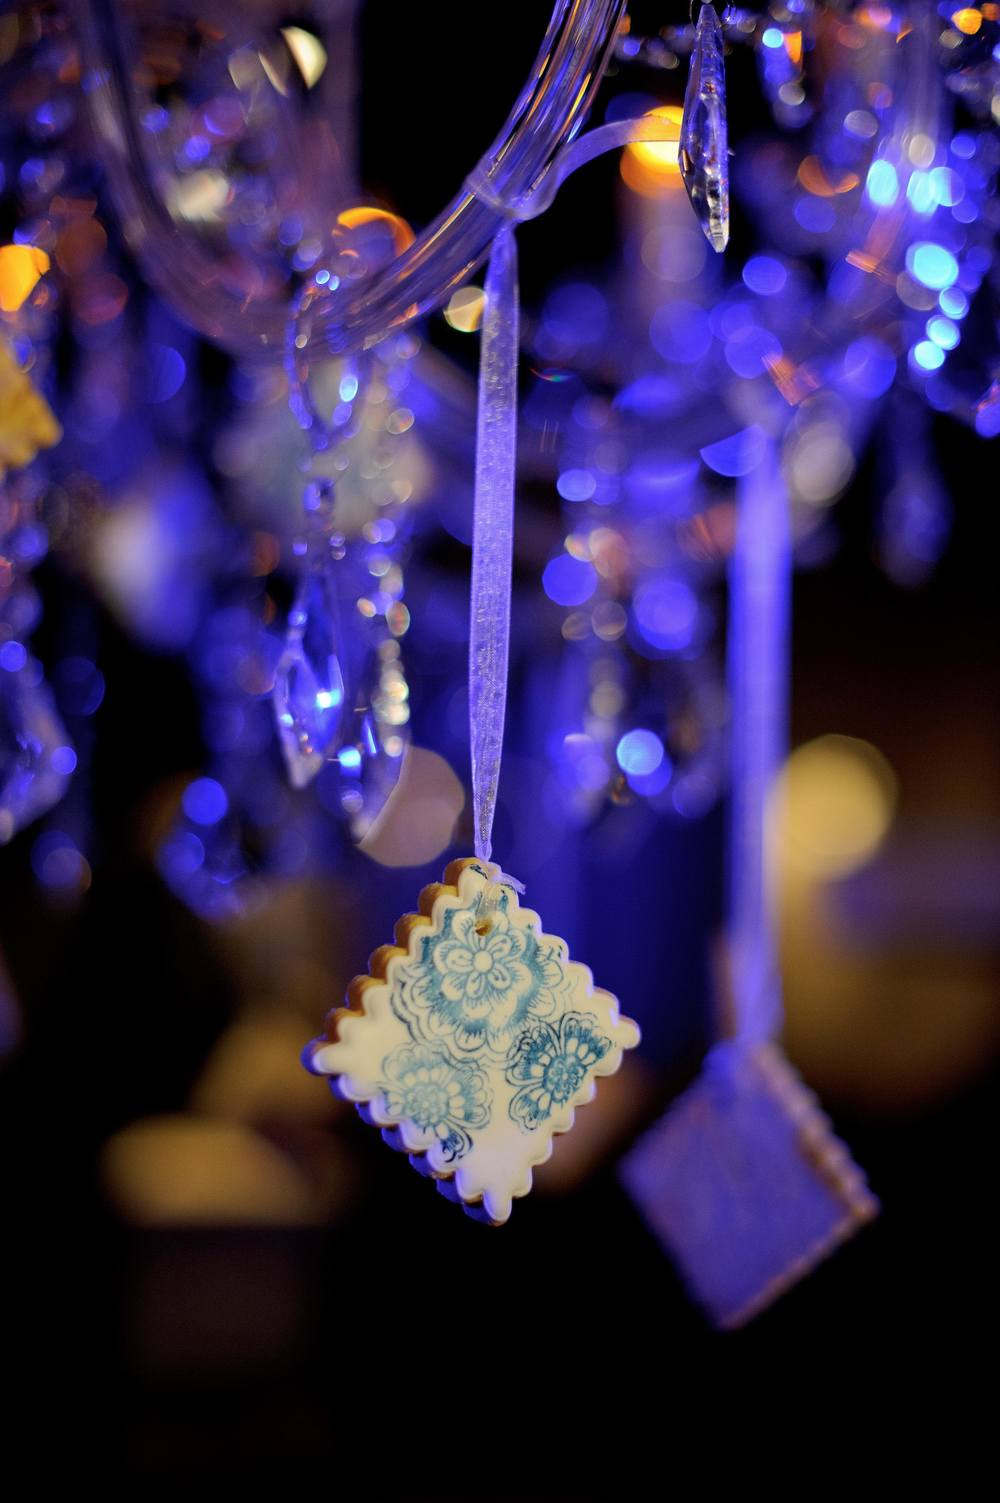 24 | Wedding Reception | Biscuit | Cookie | Chandelier | Wedding Photography | Jean Pierre Uys Photography | Lamare London.jpg